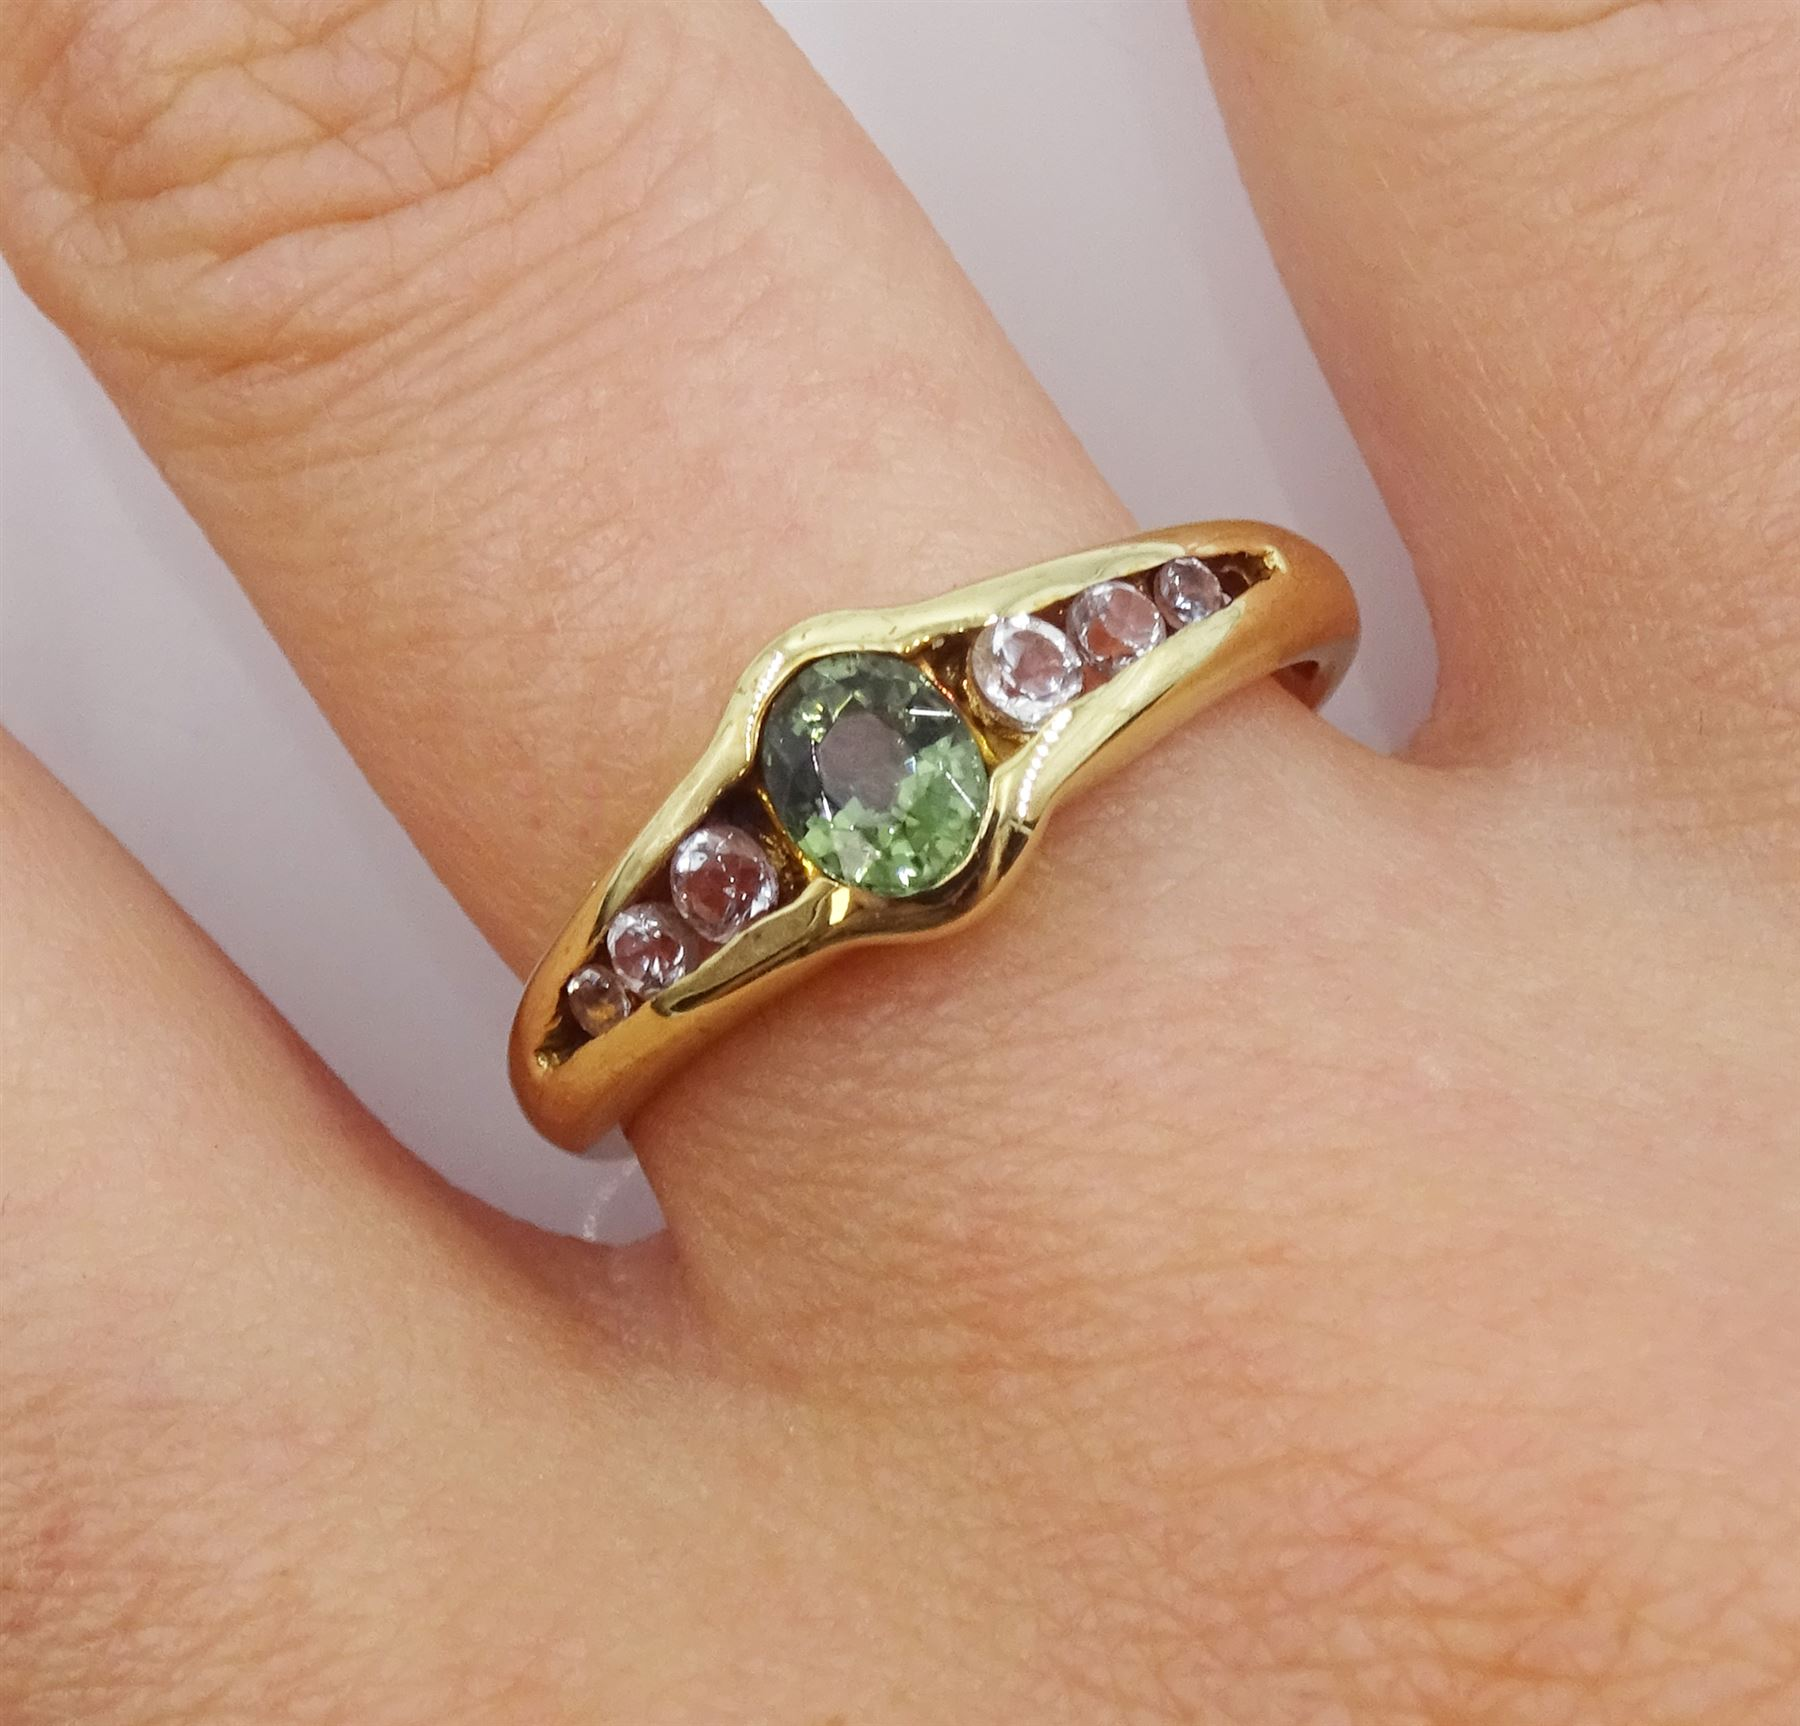 9ct gold oval green and white tourmaline ring - Image 2 of 4